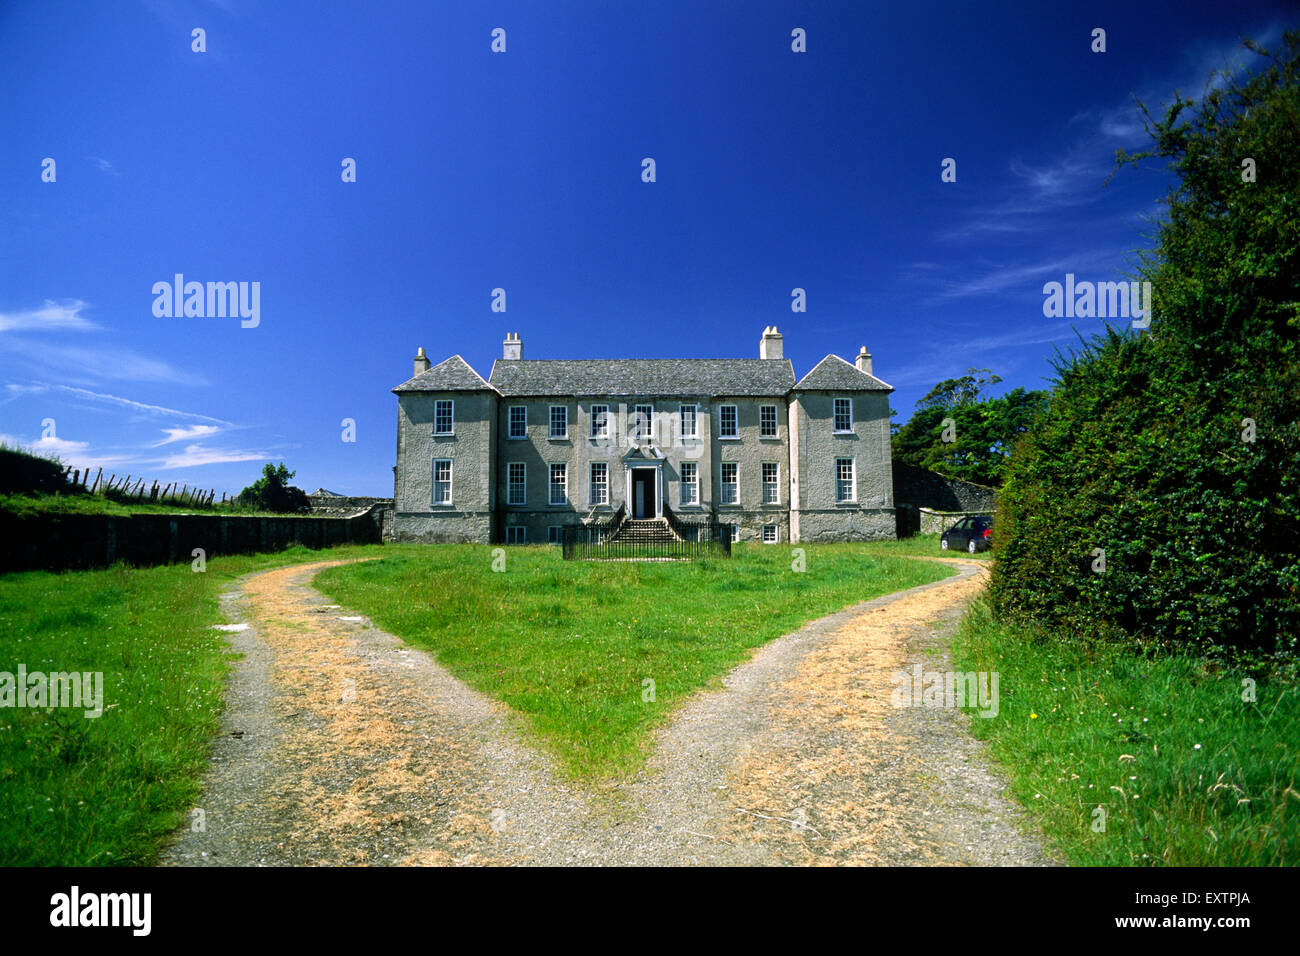 ireland, county donegal, buncrana, castle (18th century) - Stock Image